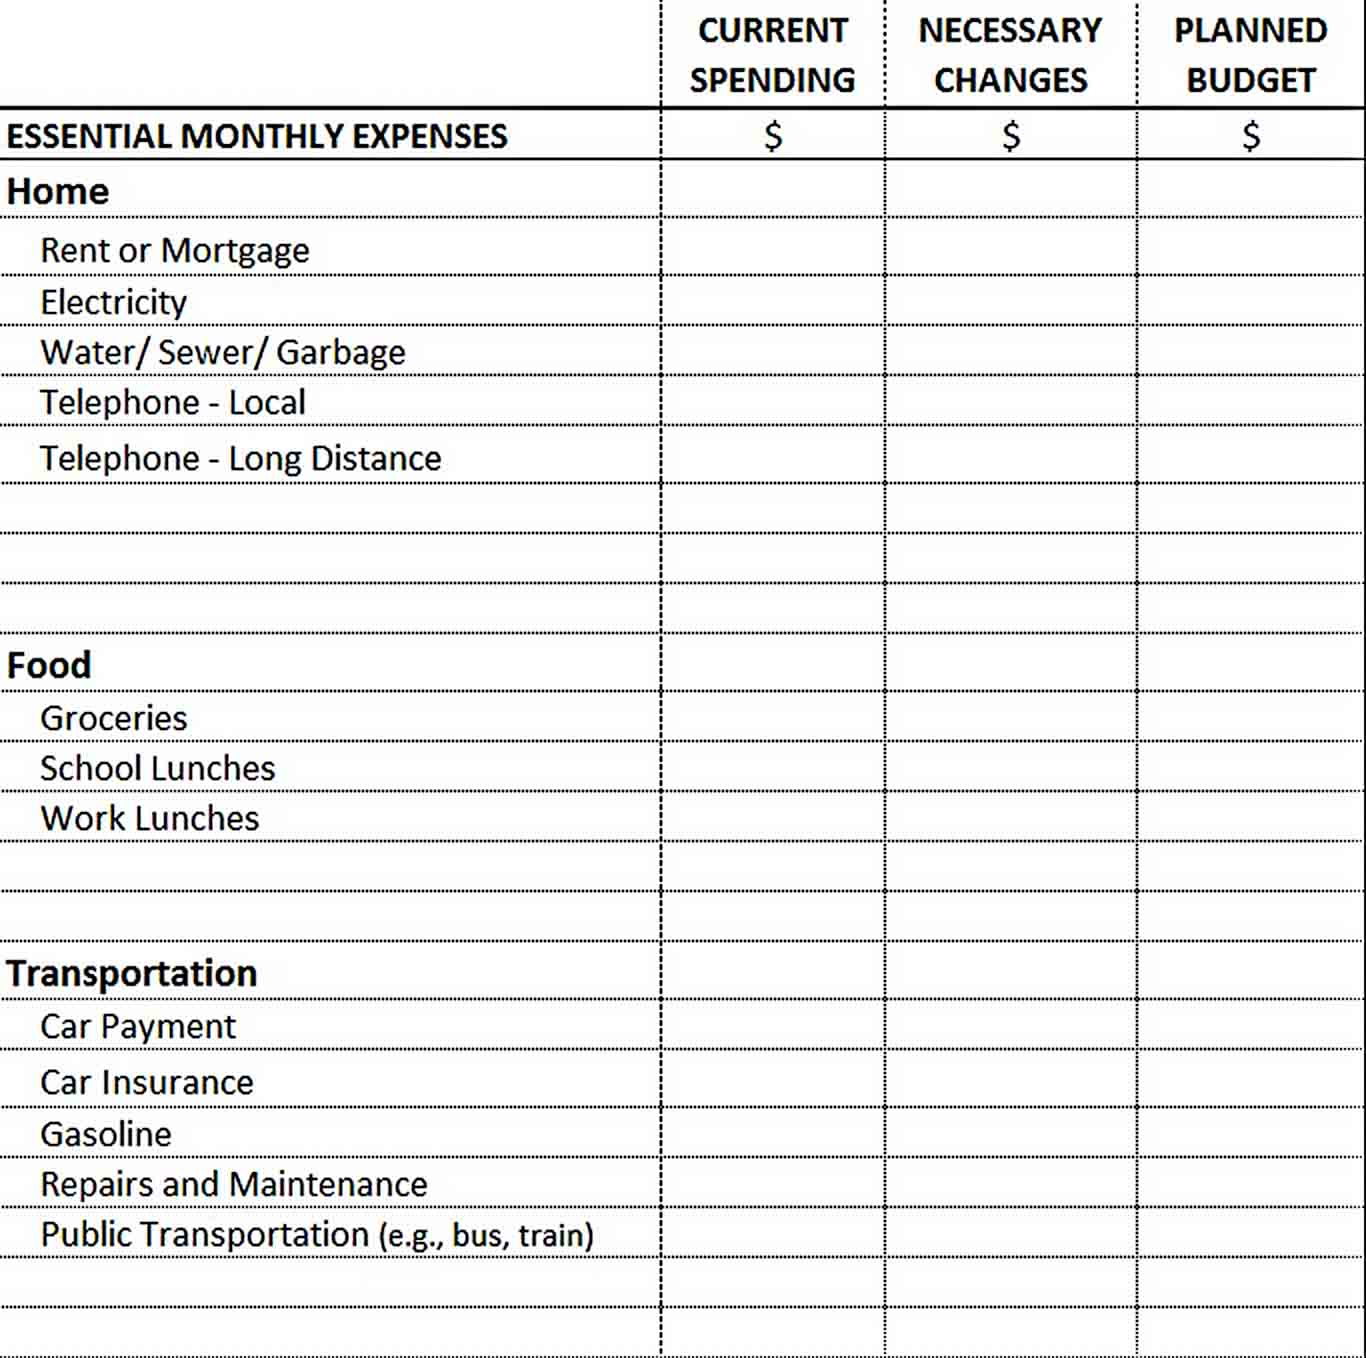 Essential Monthly Expenses Budget Template sample